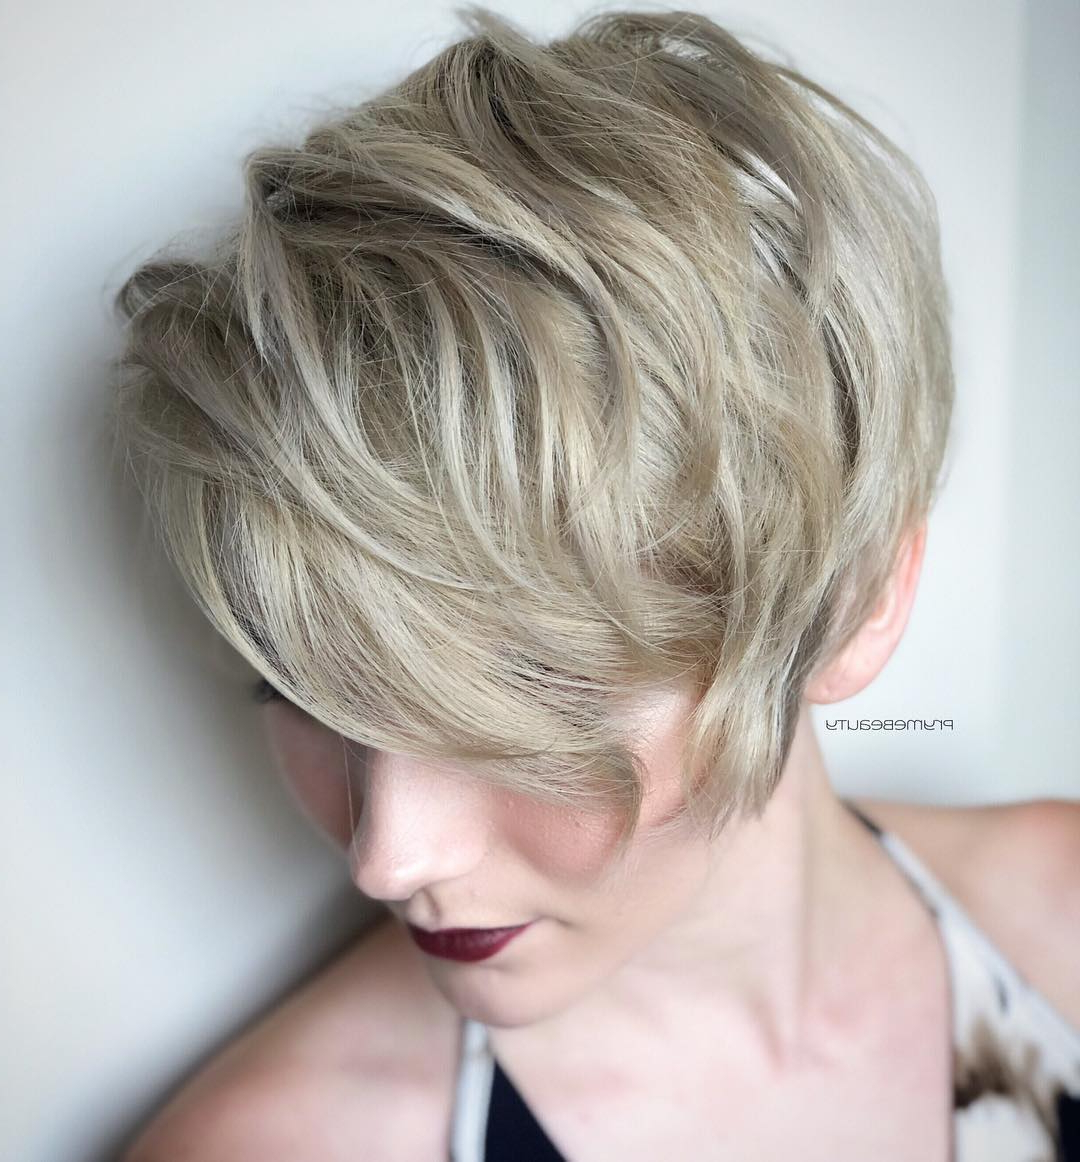 Top 10 Trendy, Low Maintenance Short Layered Hairstyles For 2018  2019 In Easy Maintenance Short Hairstyles (View 4 of 25)